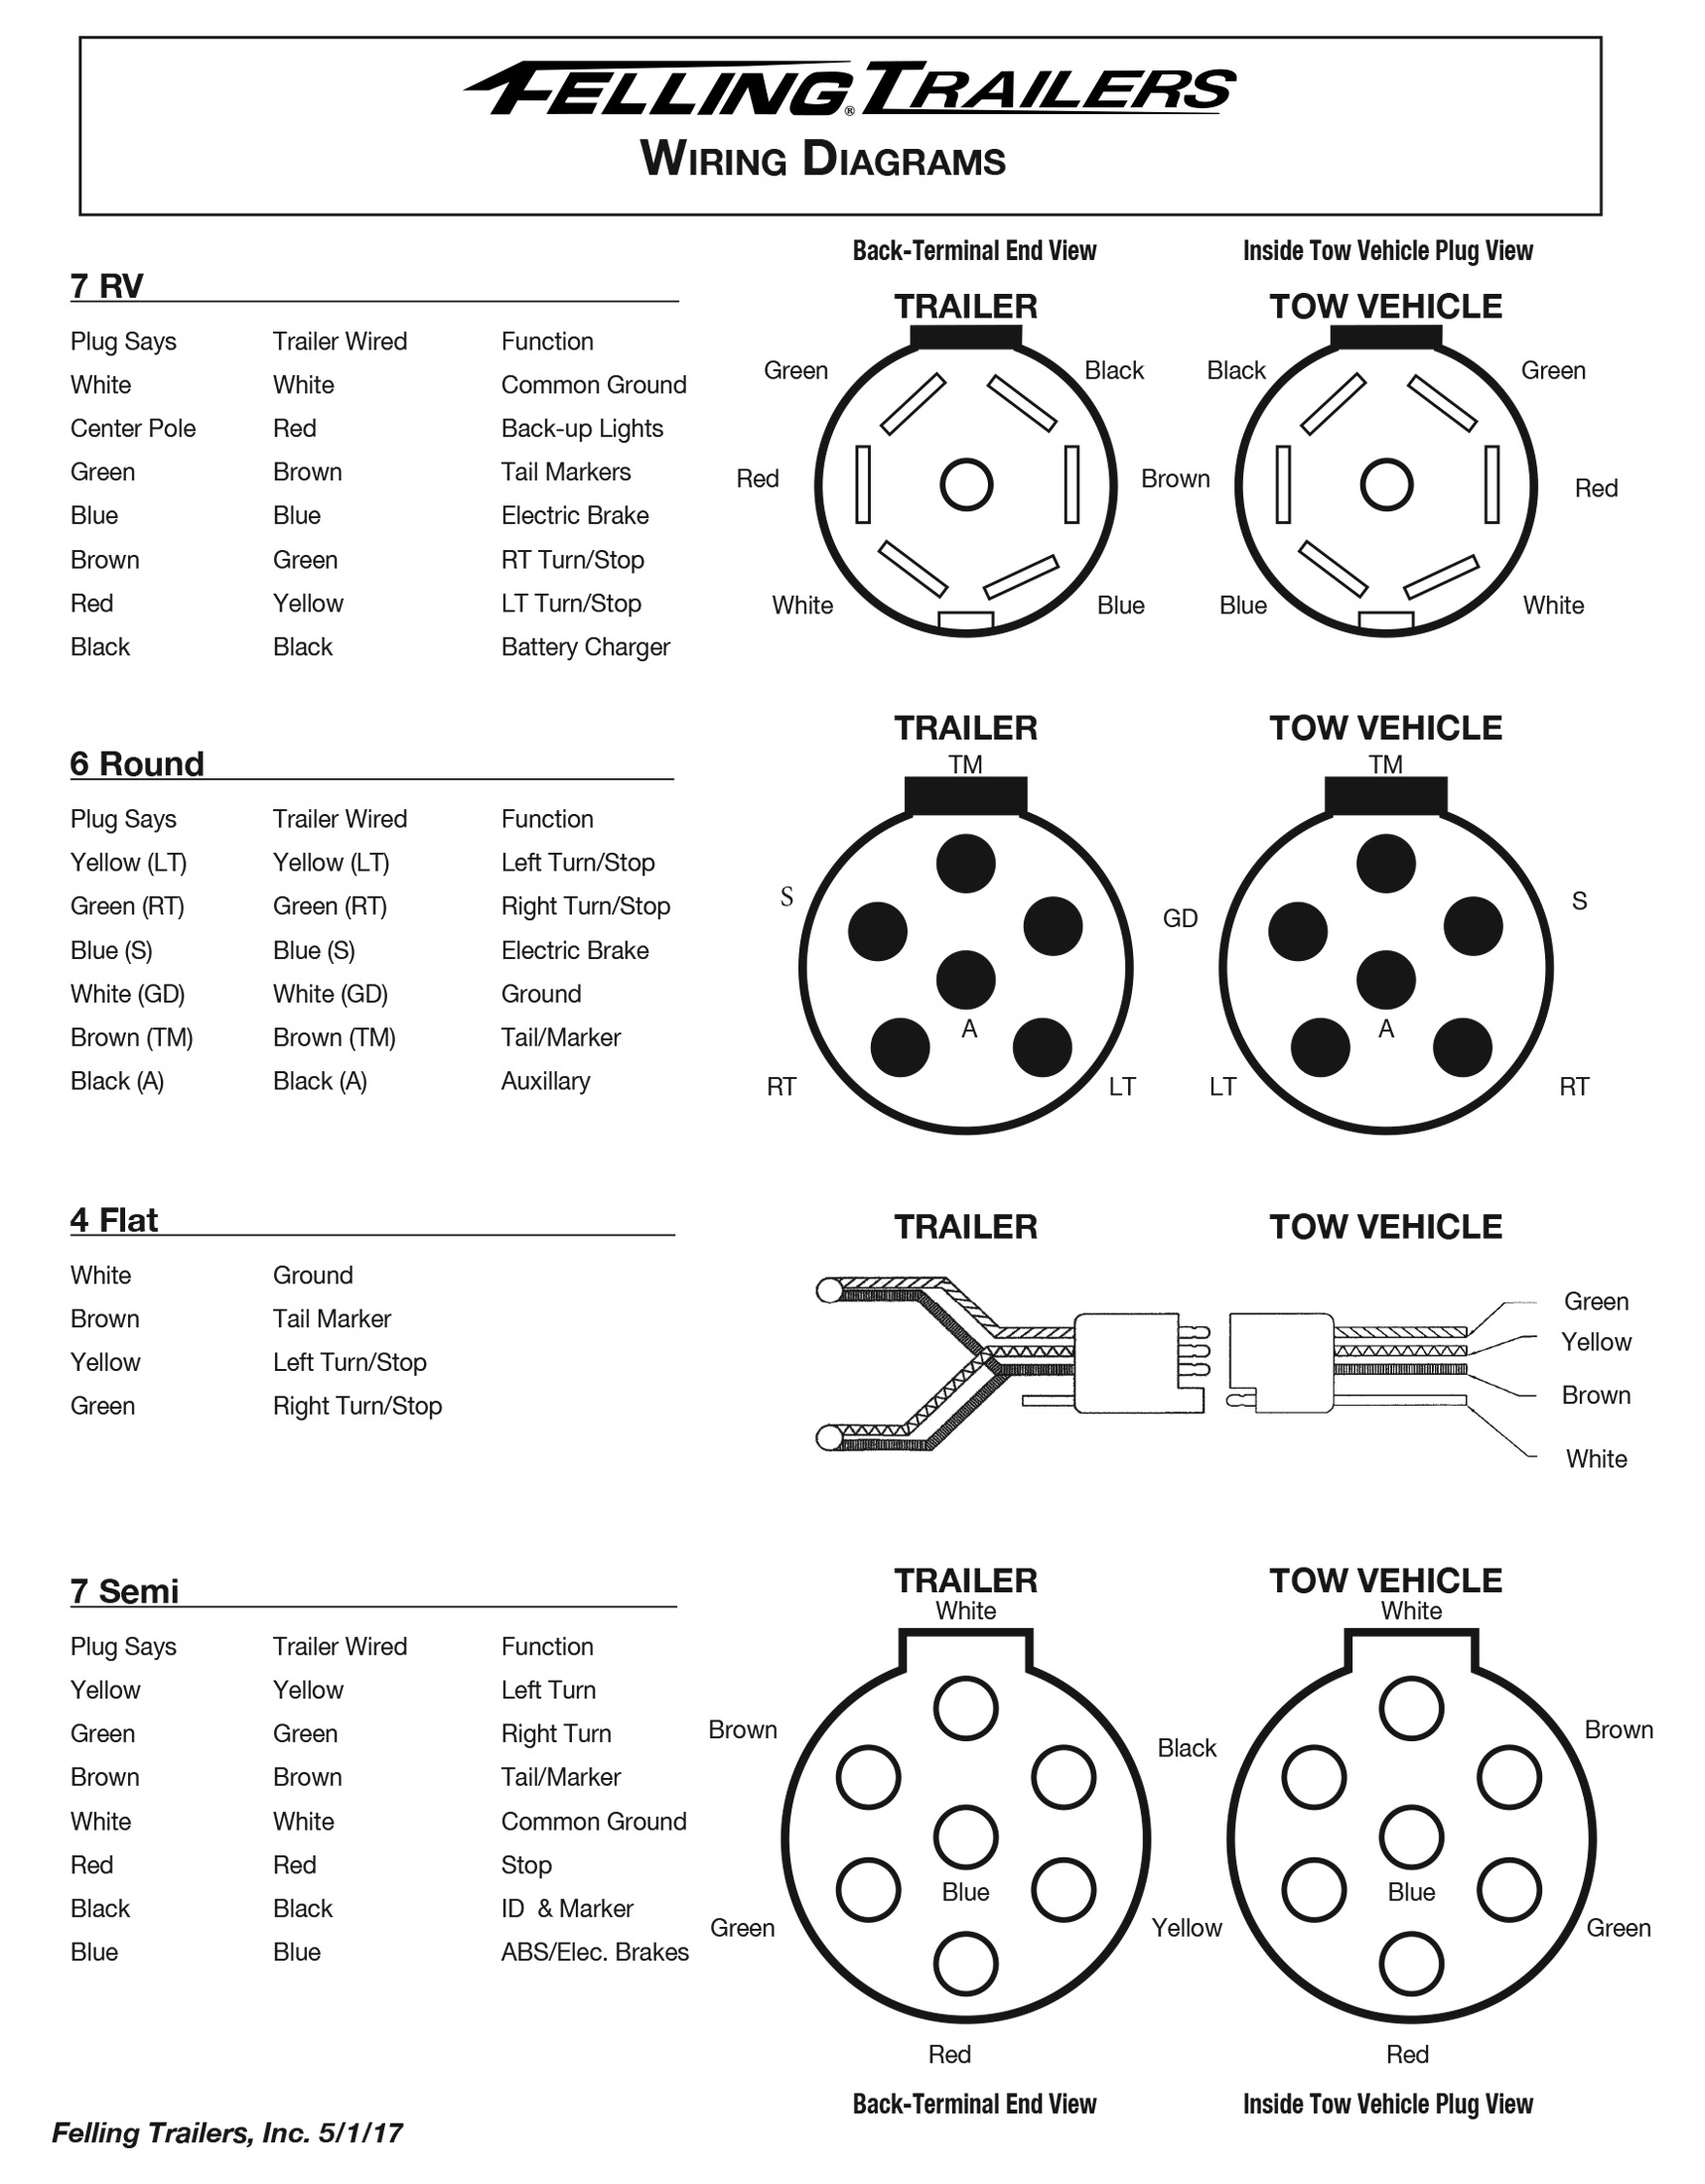 Service- Felling Trailers Wiring Diagrams, Wheel Toque - 4 Pole Trailer Wiring Diagram